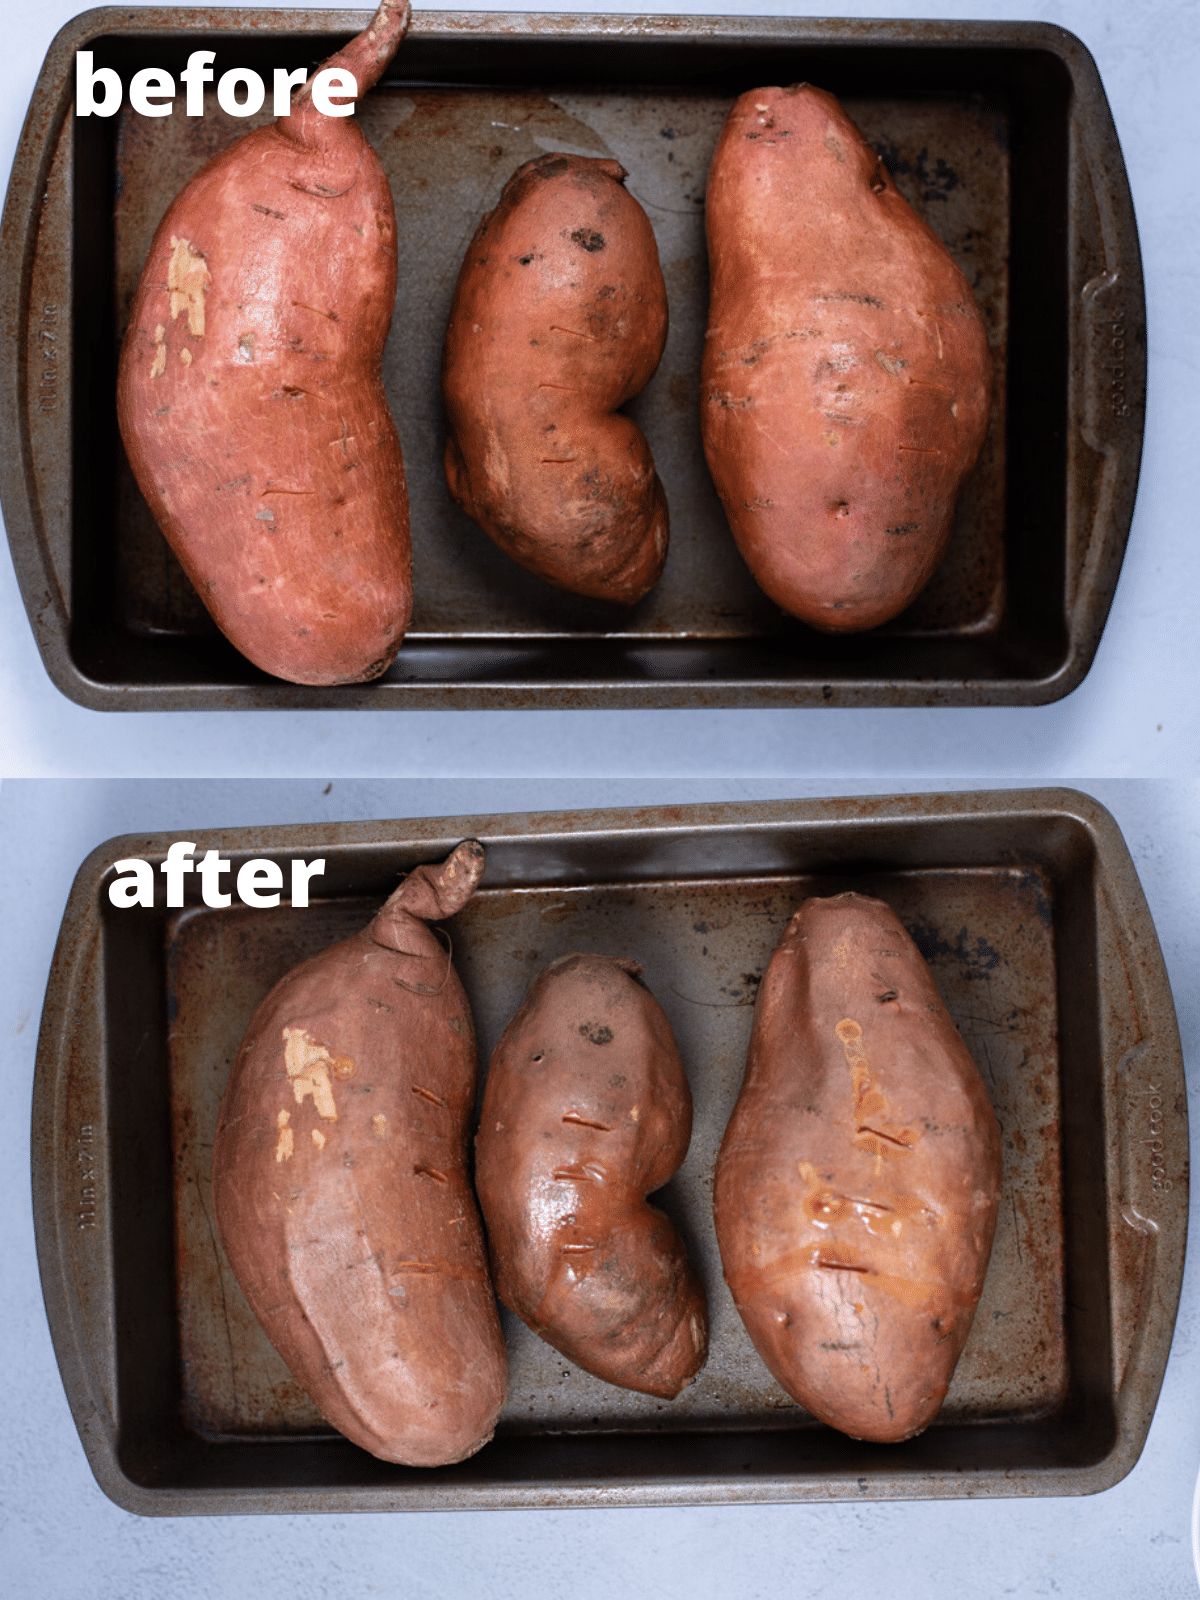 Three sweet potatoes on a metal pan before and after baking